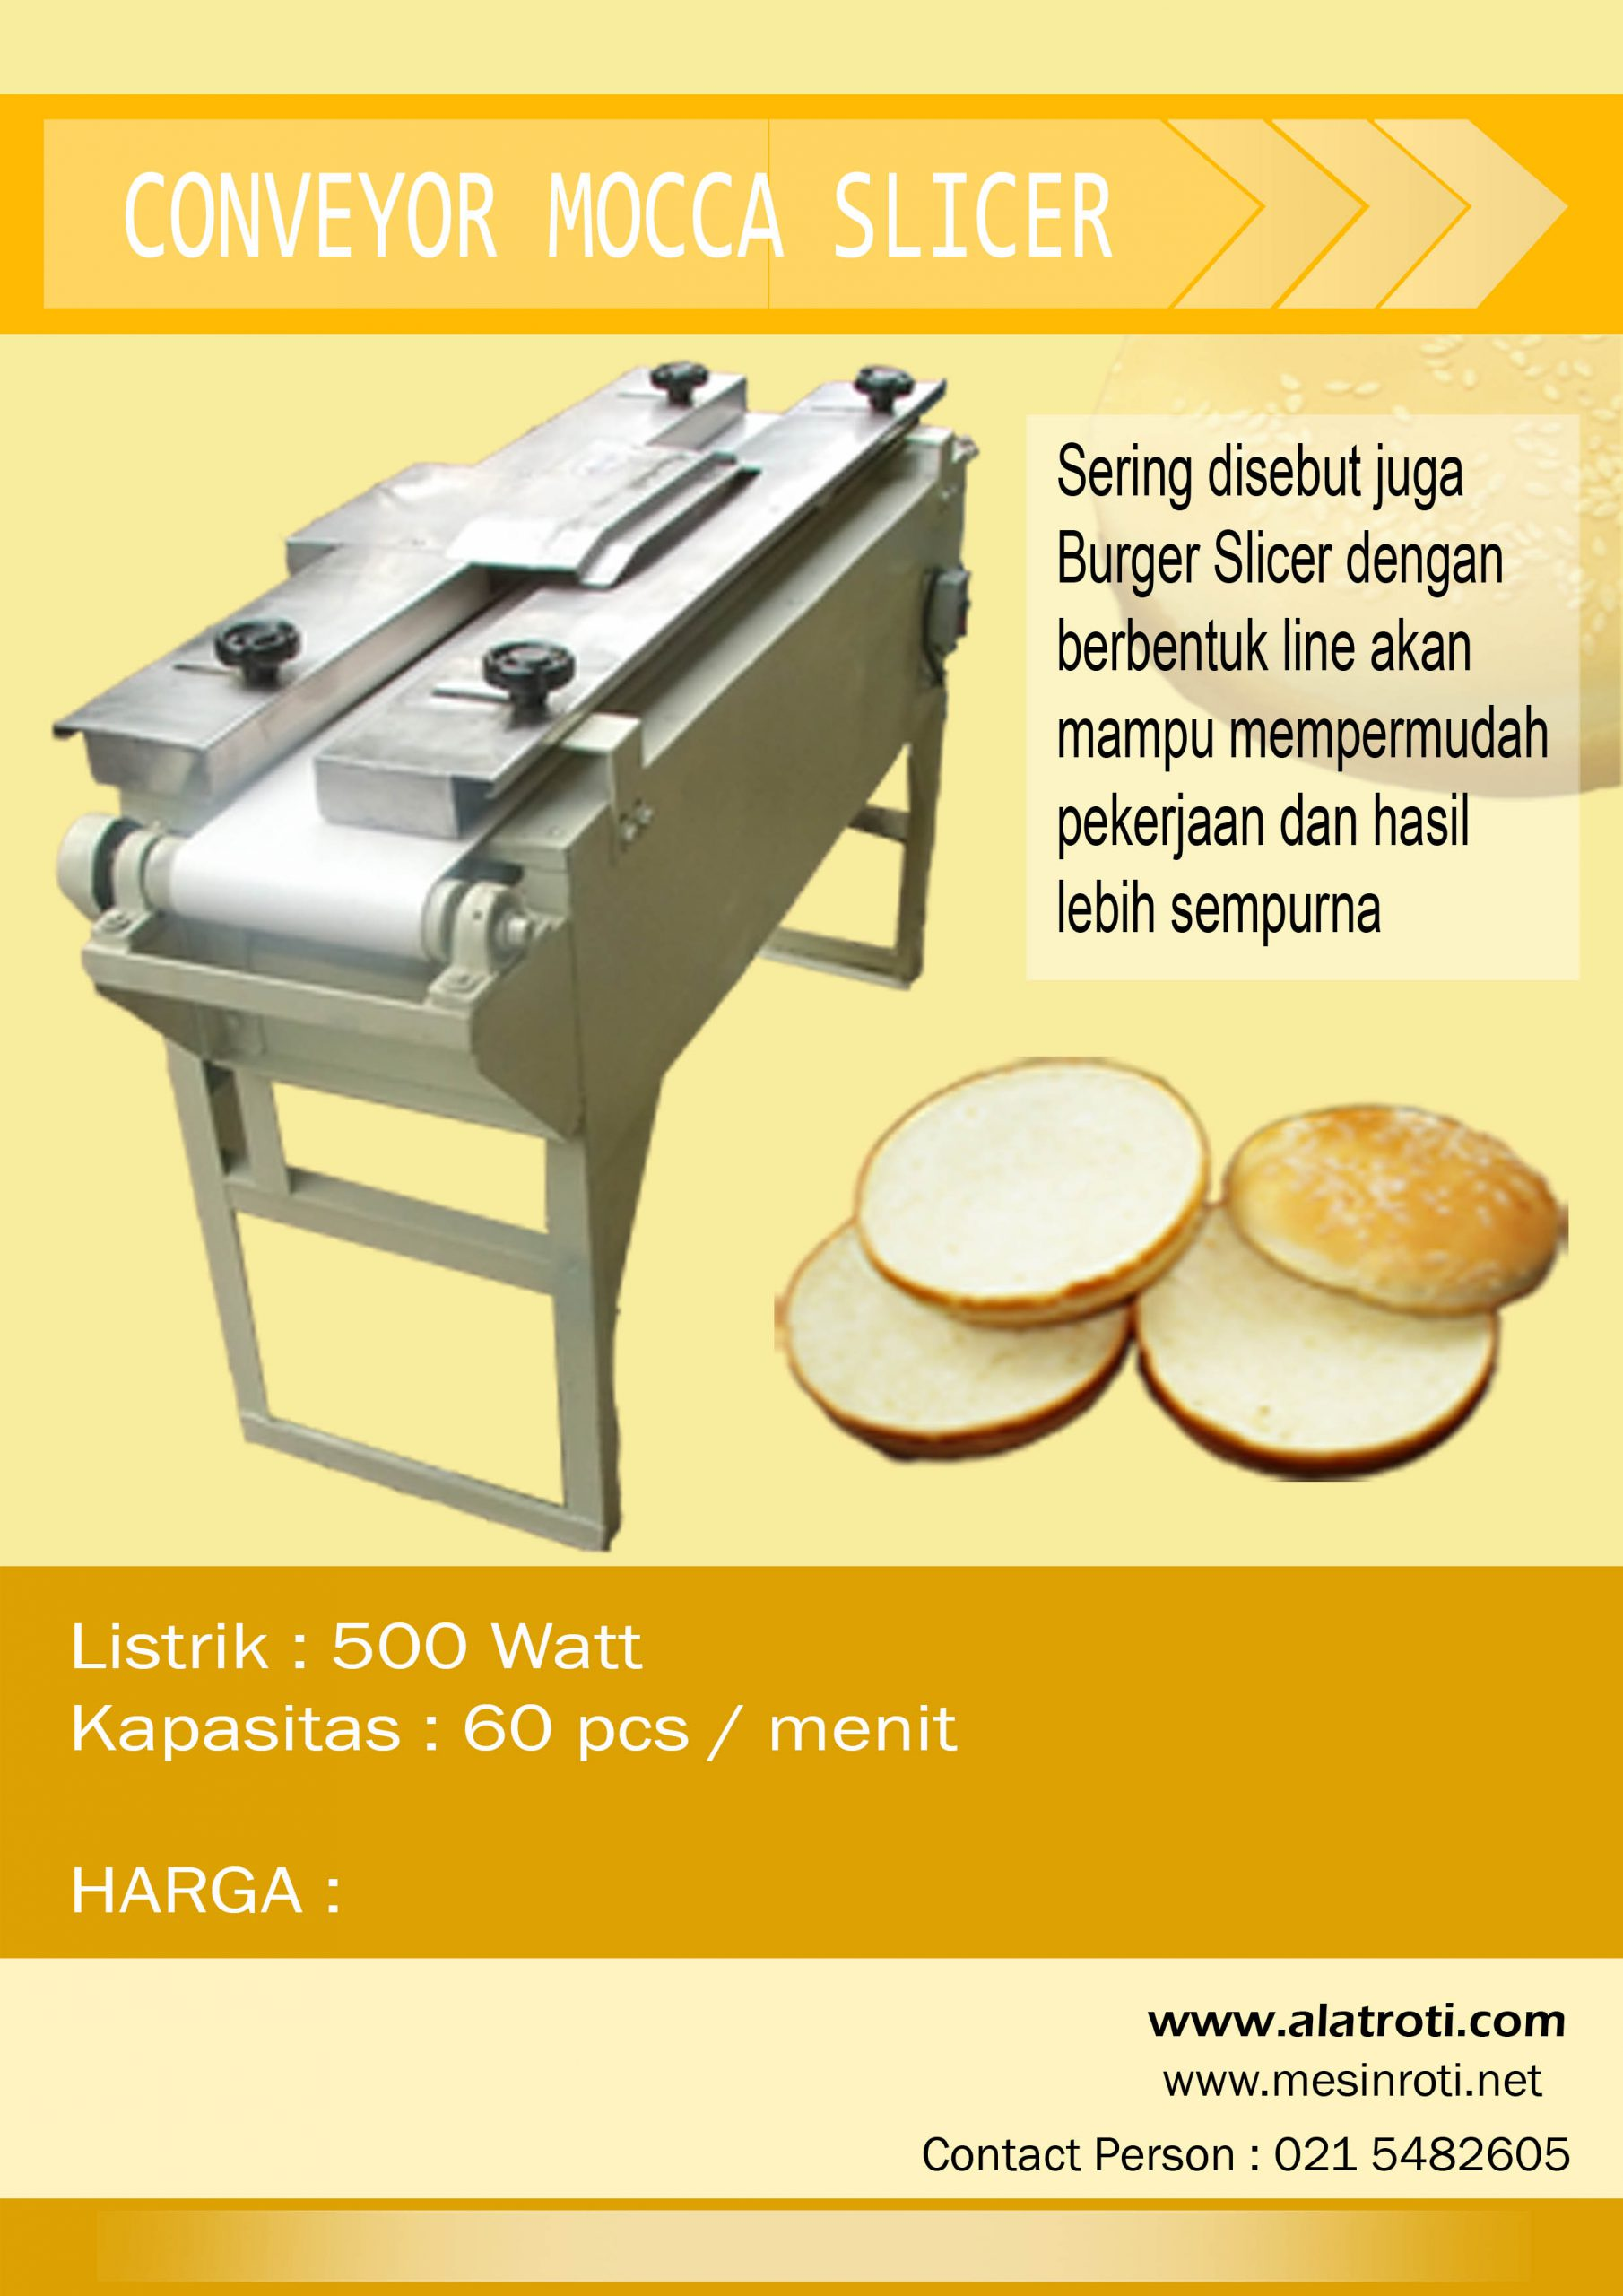 Mocca Slicer / Burger Slicer (Conveyor)